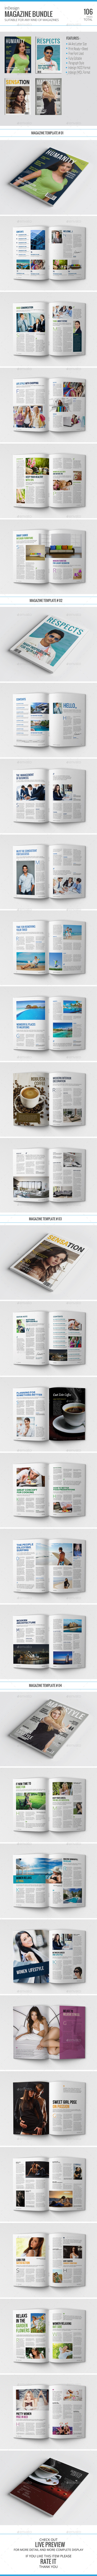 GraphicRiver Magazine Bundle Vol 02 10054129